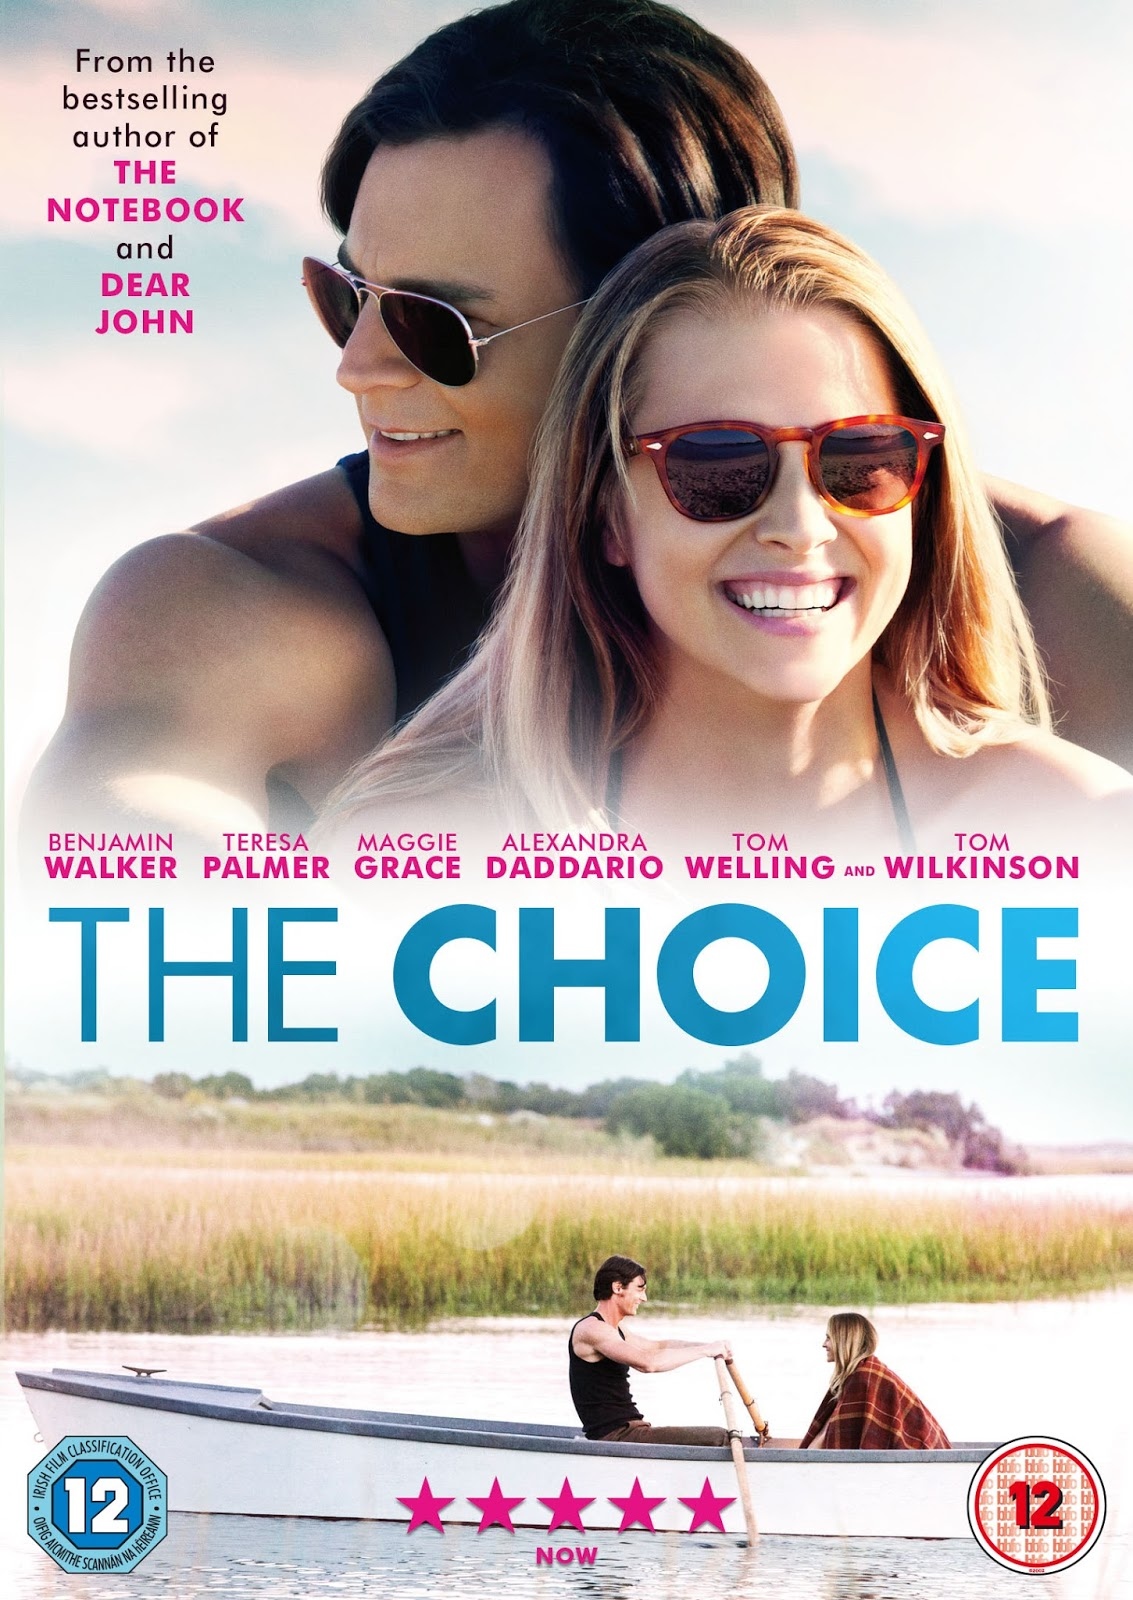 feeling fictional movie review the choice based on a novel by movie review the choice based on a novel by nicholas sparks uk giveaway for 3 copies of the dvd